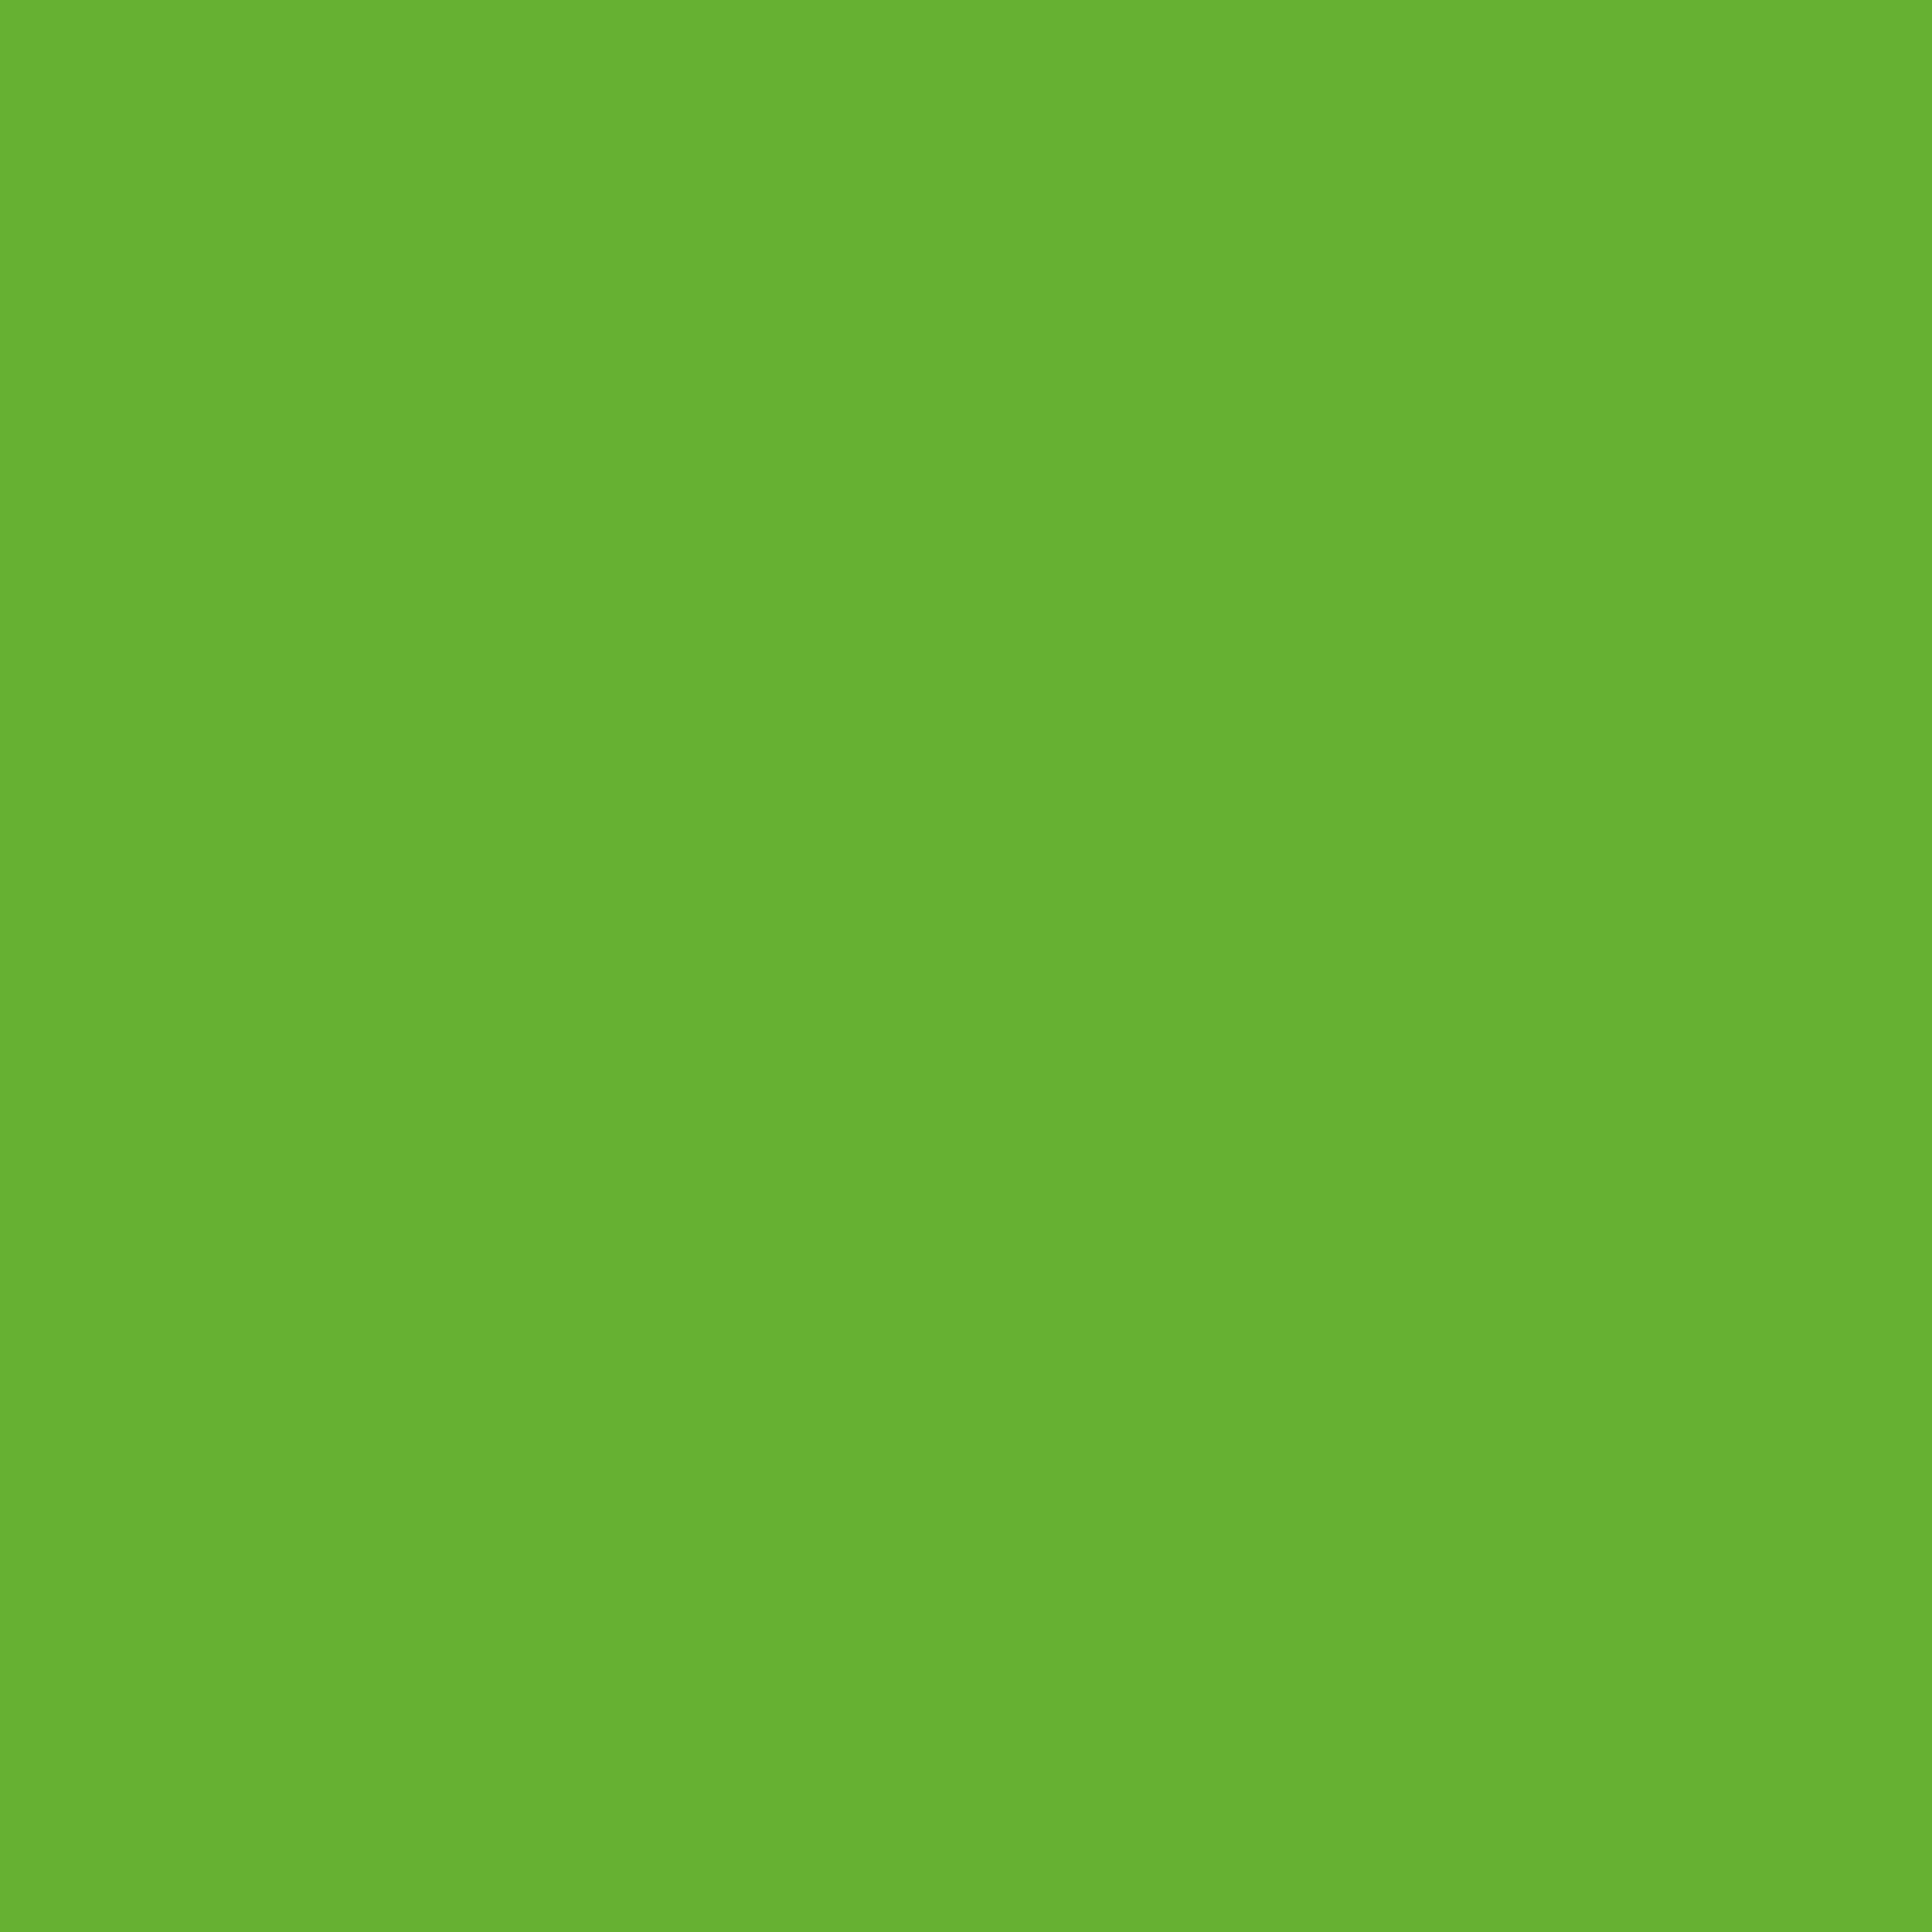 2048x2048 Green RYB Solid Color Background